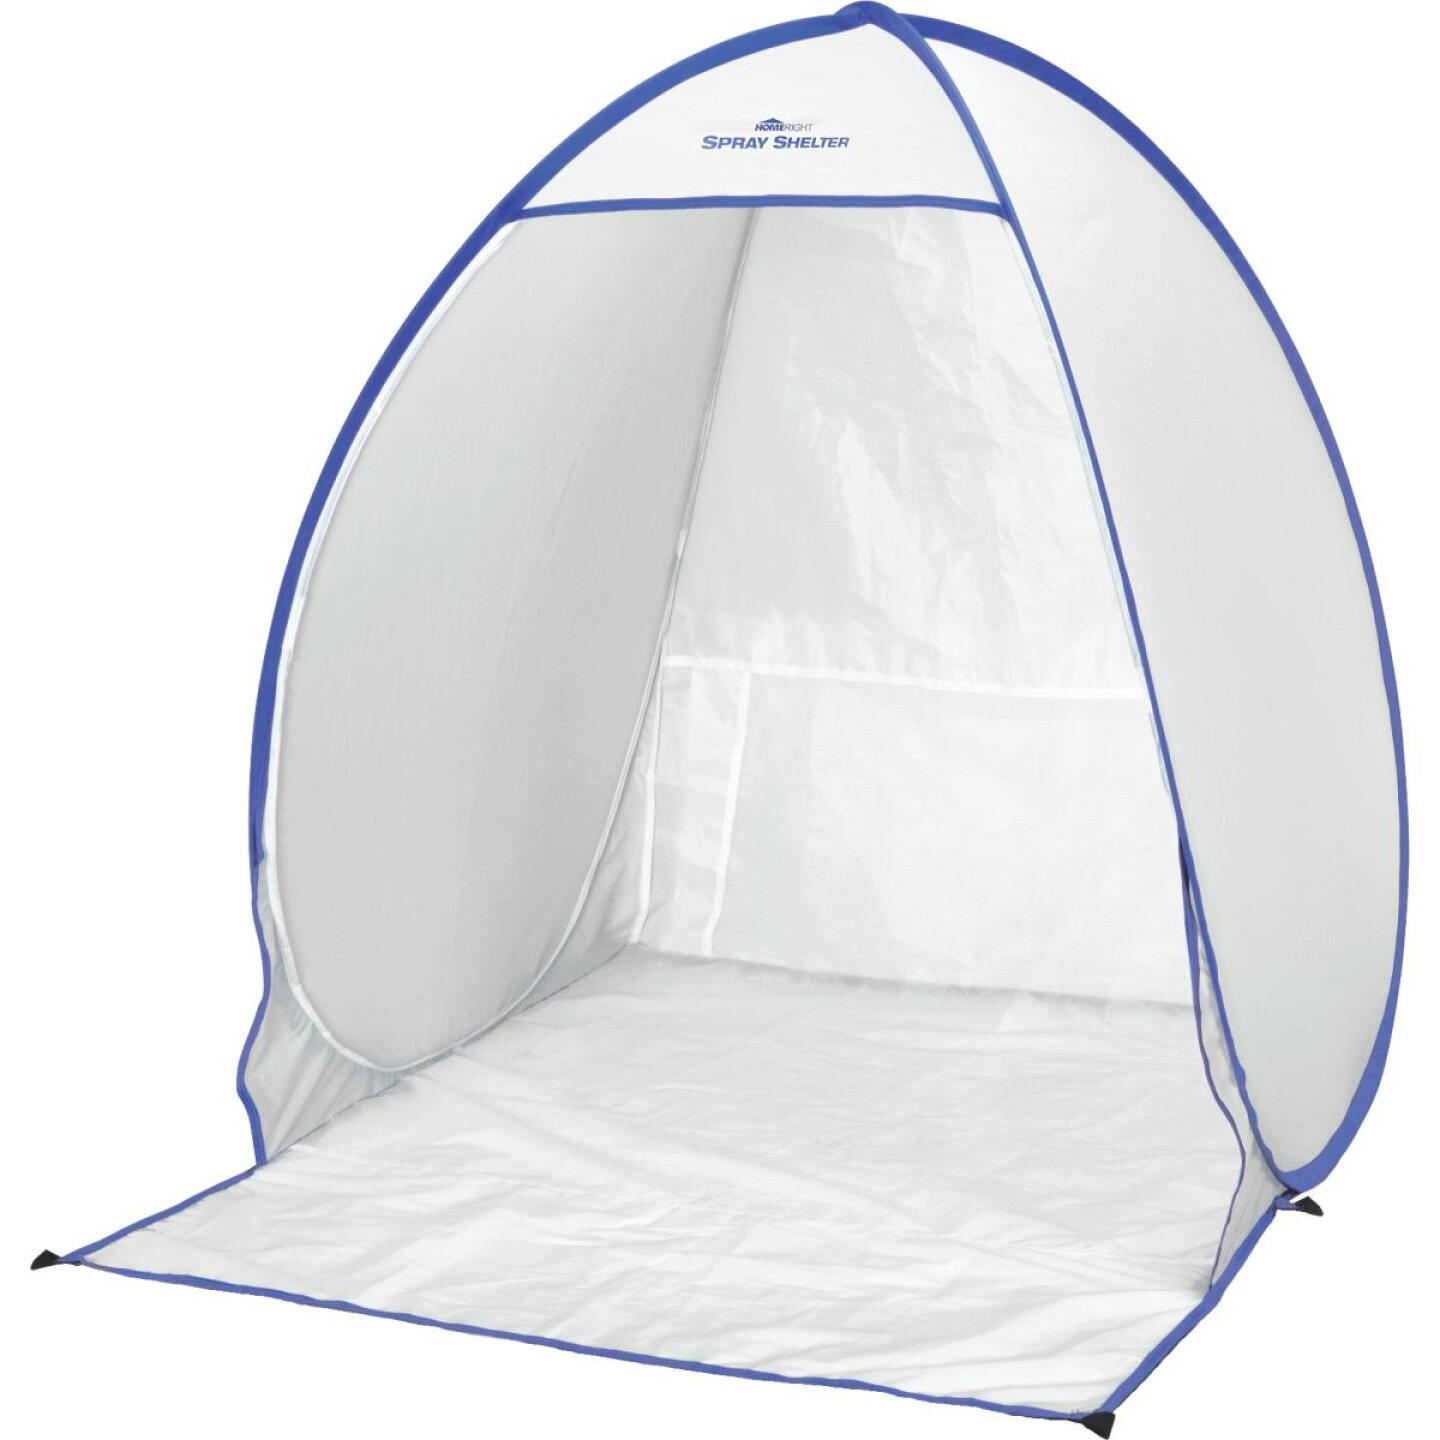 HomeRight 35 In. W. x 39 In. H. x 30 In. D. Small Portable Spray Shelter Image 1